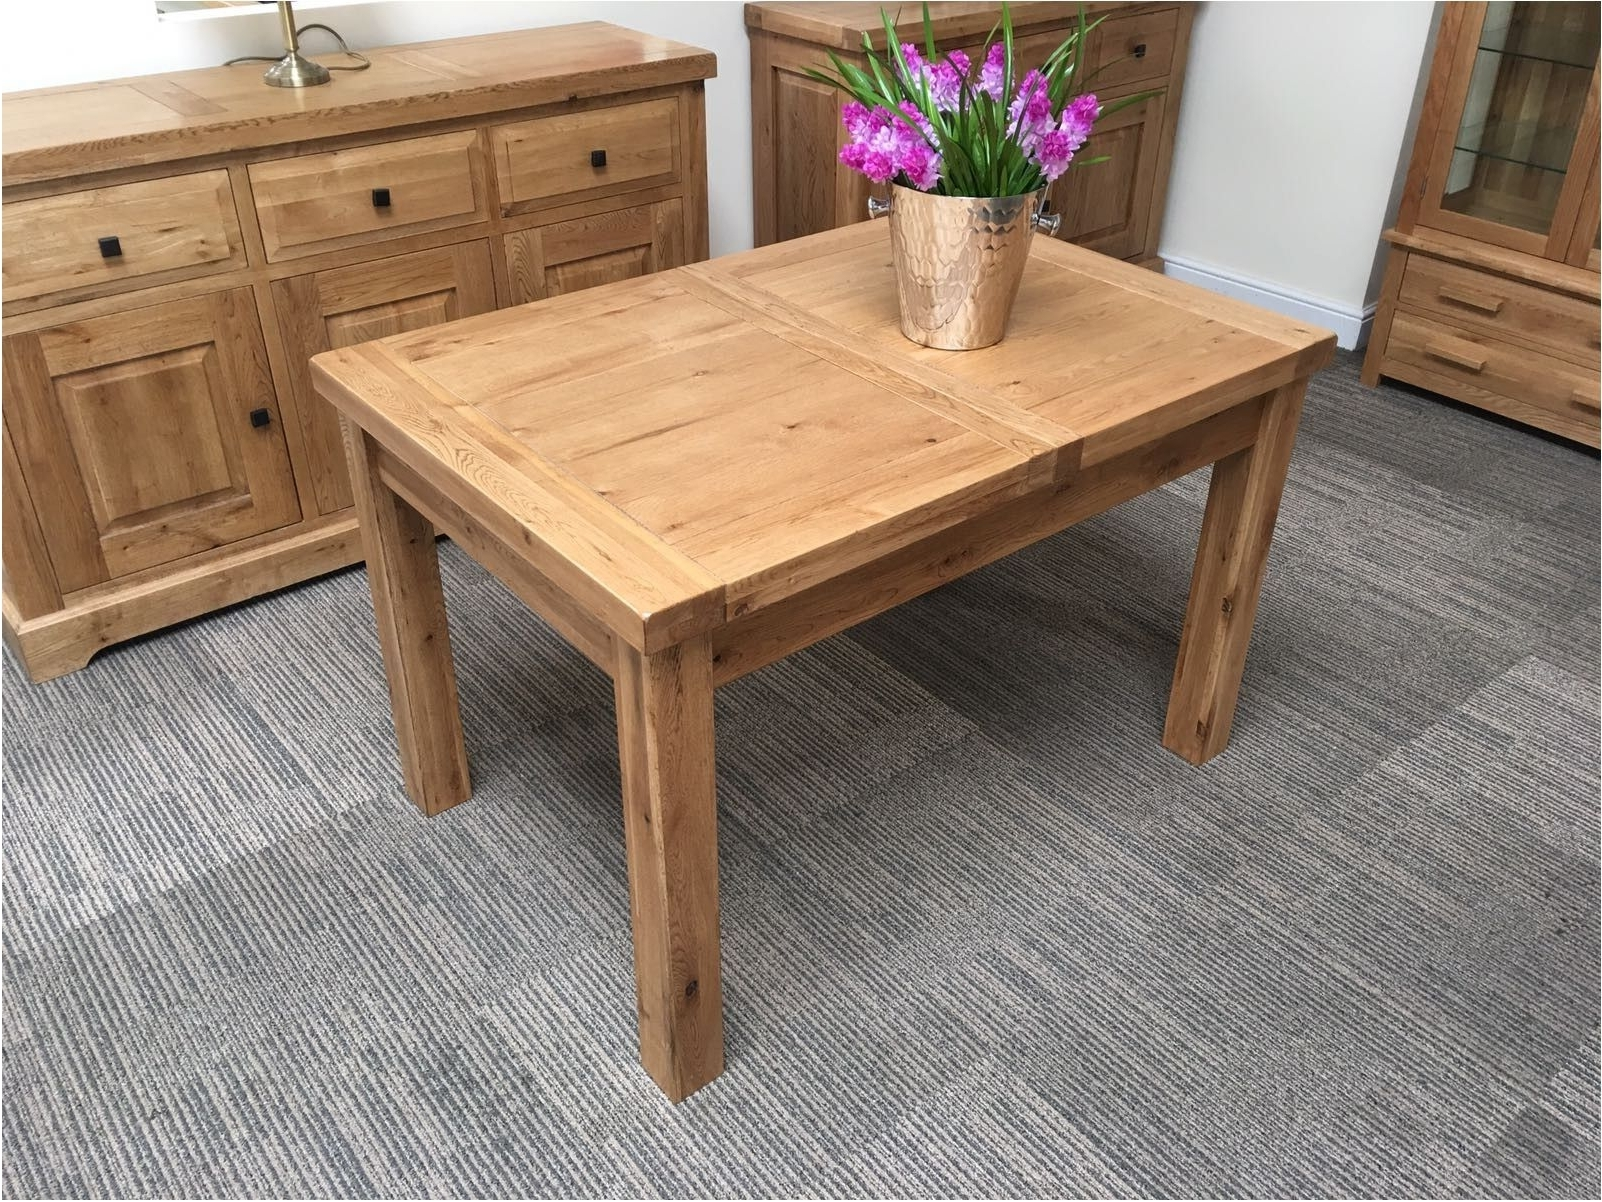 Fashionable Solid Oak Dining Tables Intended For Excellently Oxford Solid Oak Extending Dining Table Oak Furniture (View 22 of 25)